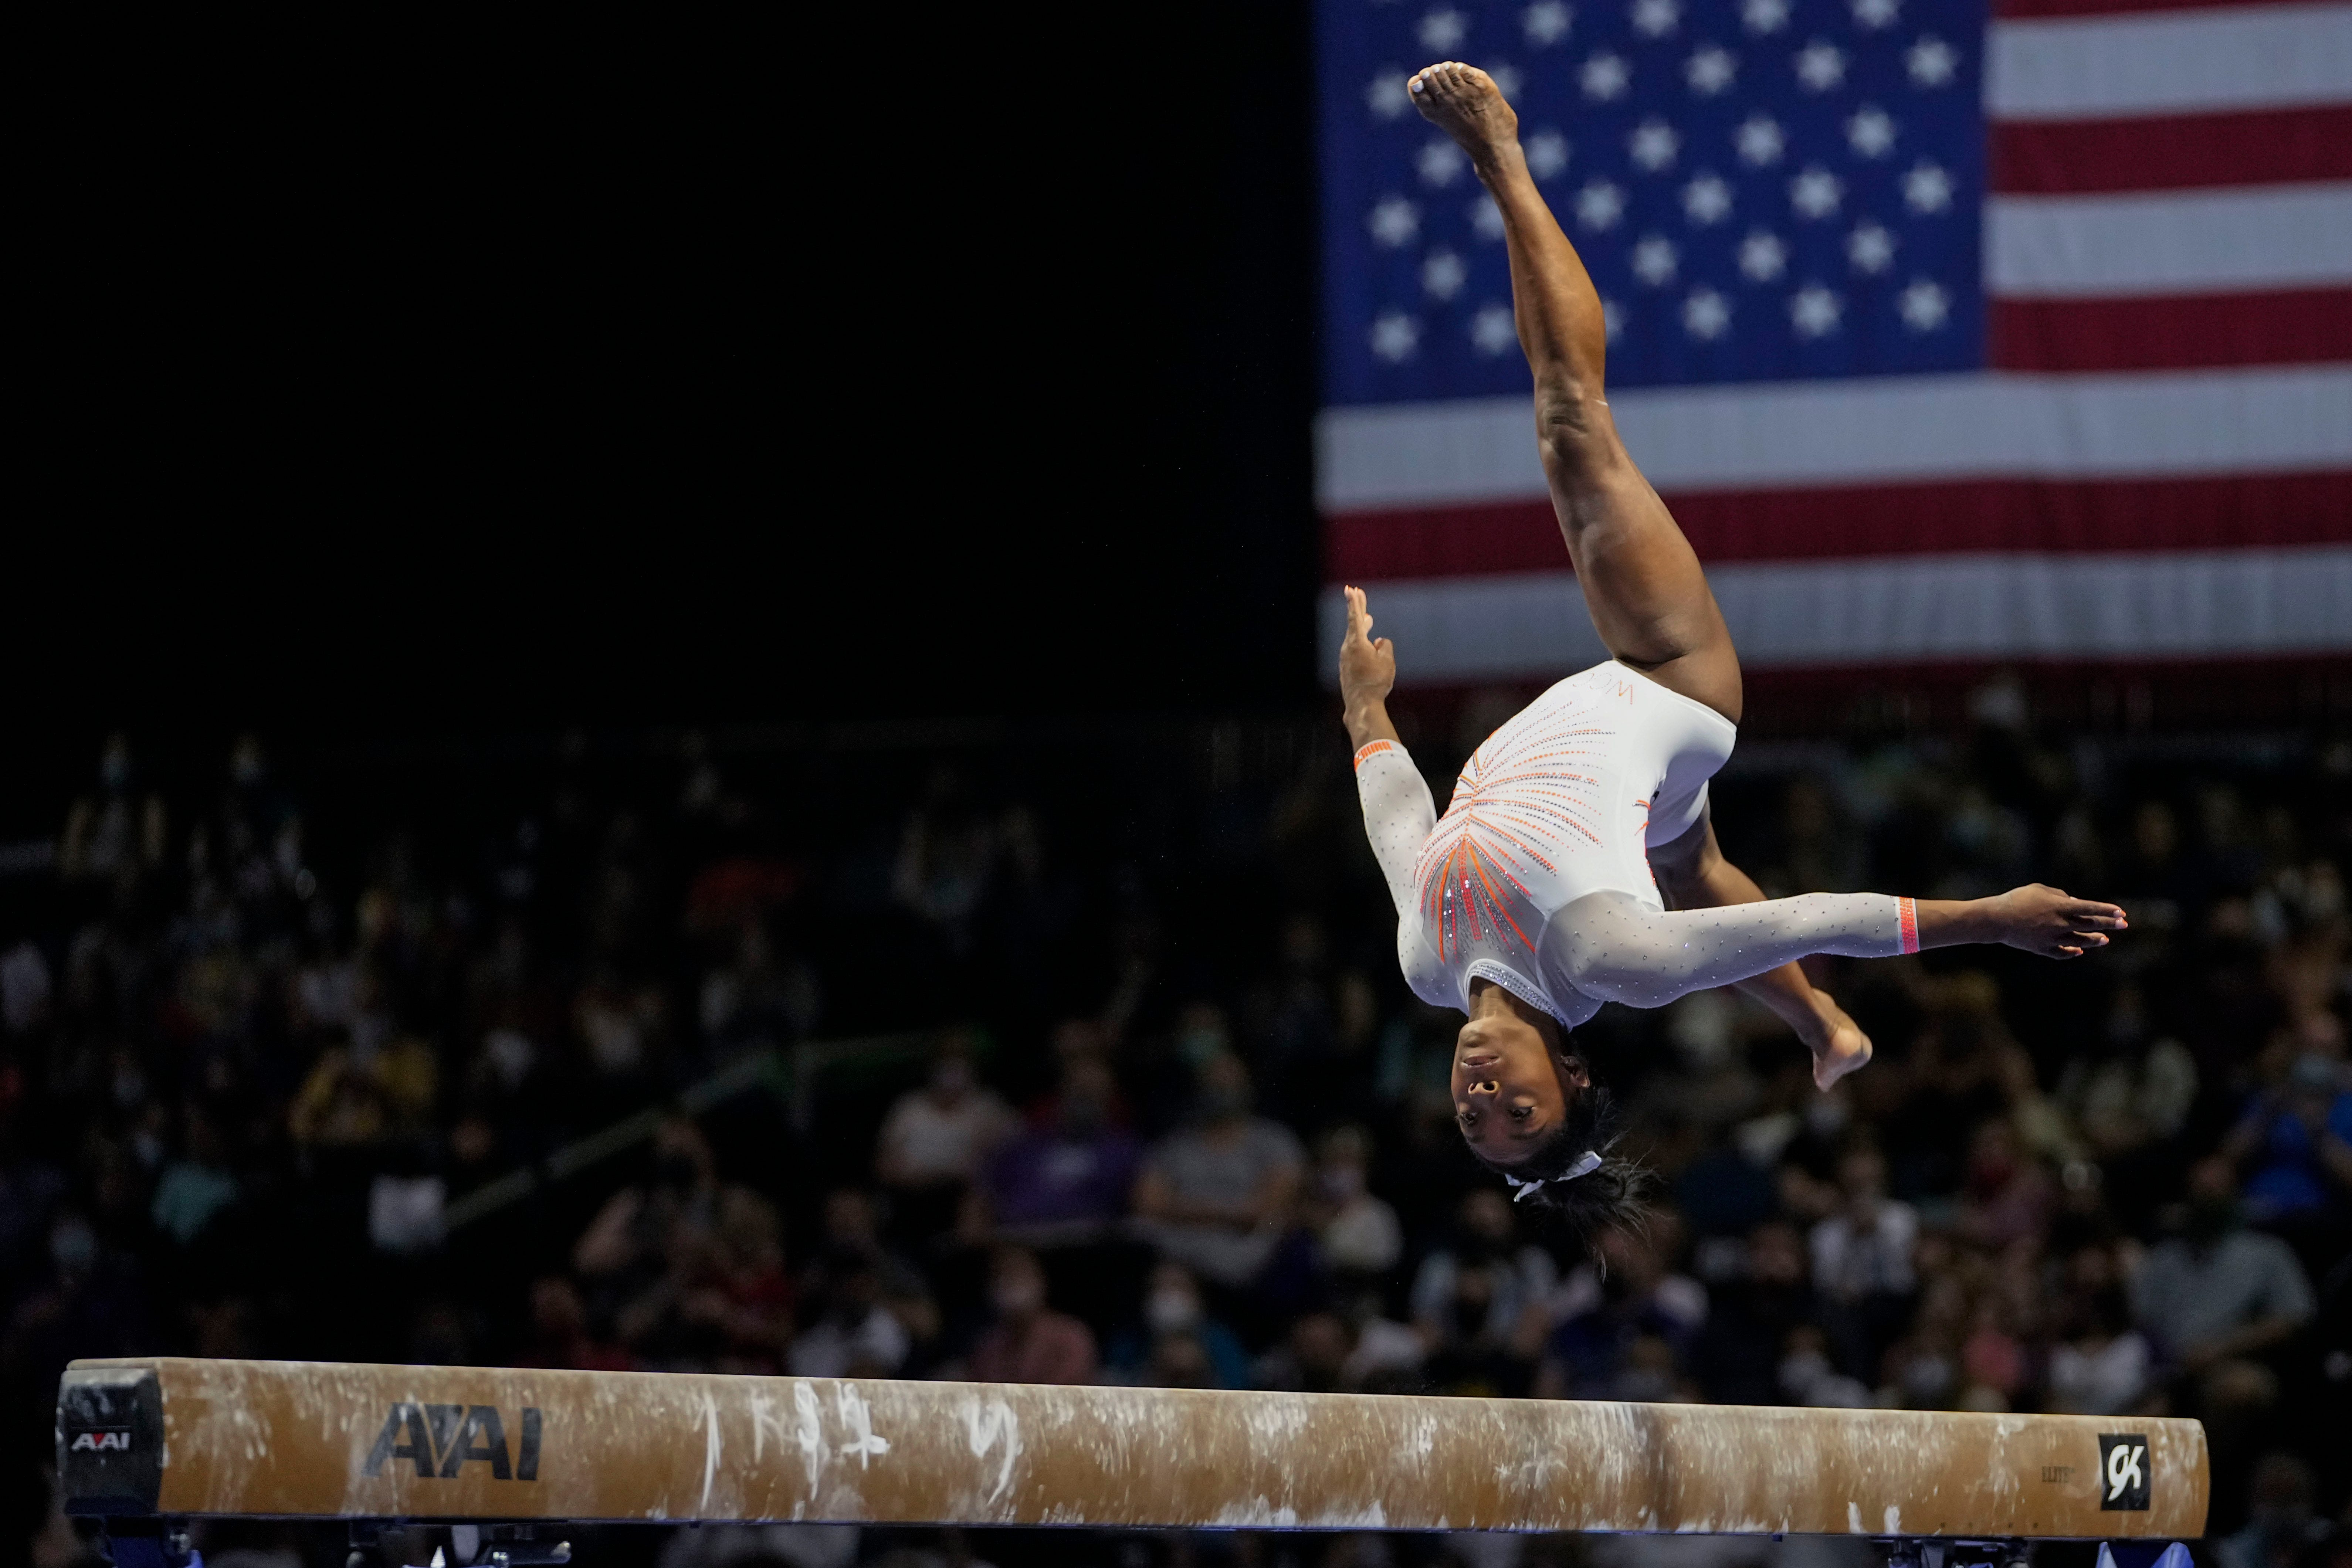 Opinion: Simone Biles maintains gold standard despite 19-month layoff between competitions